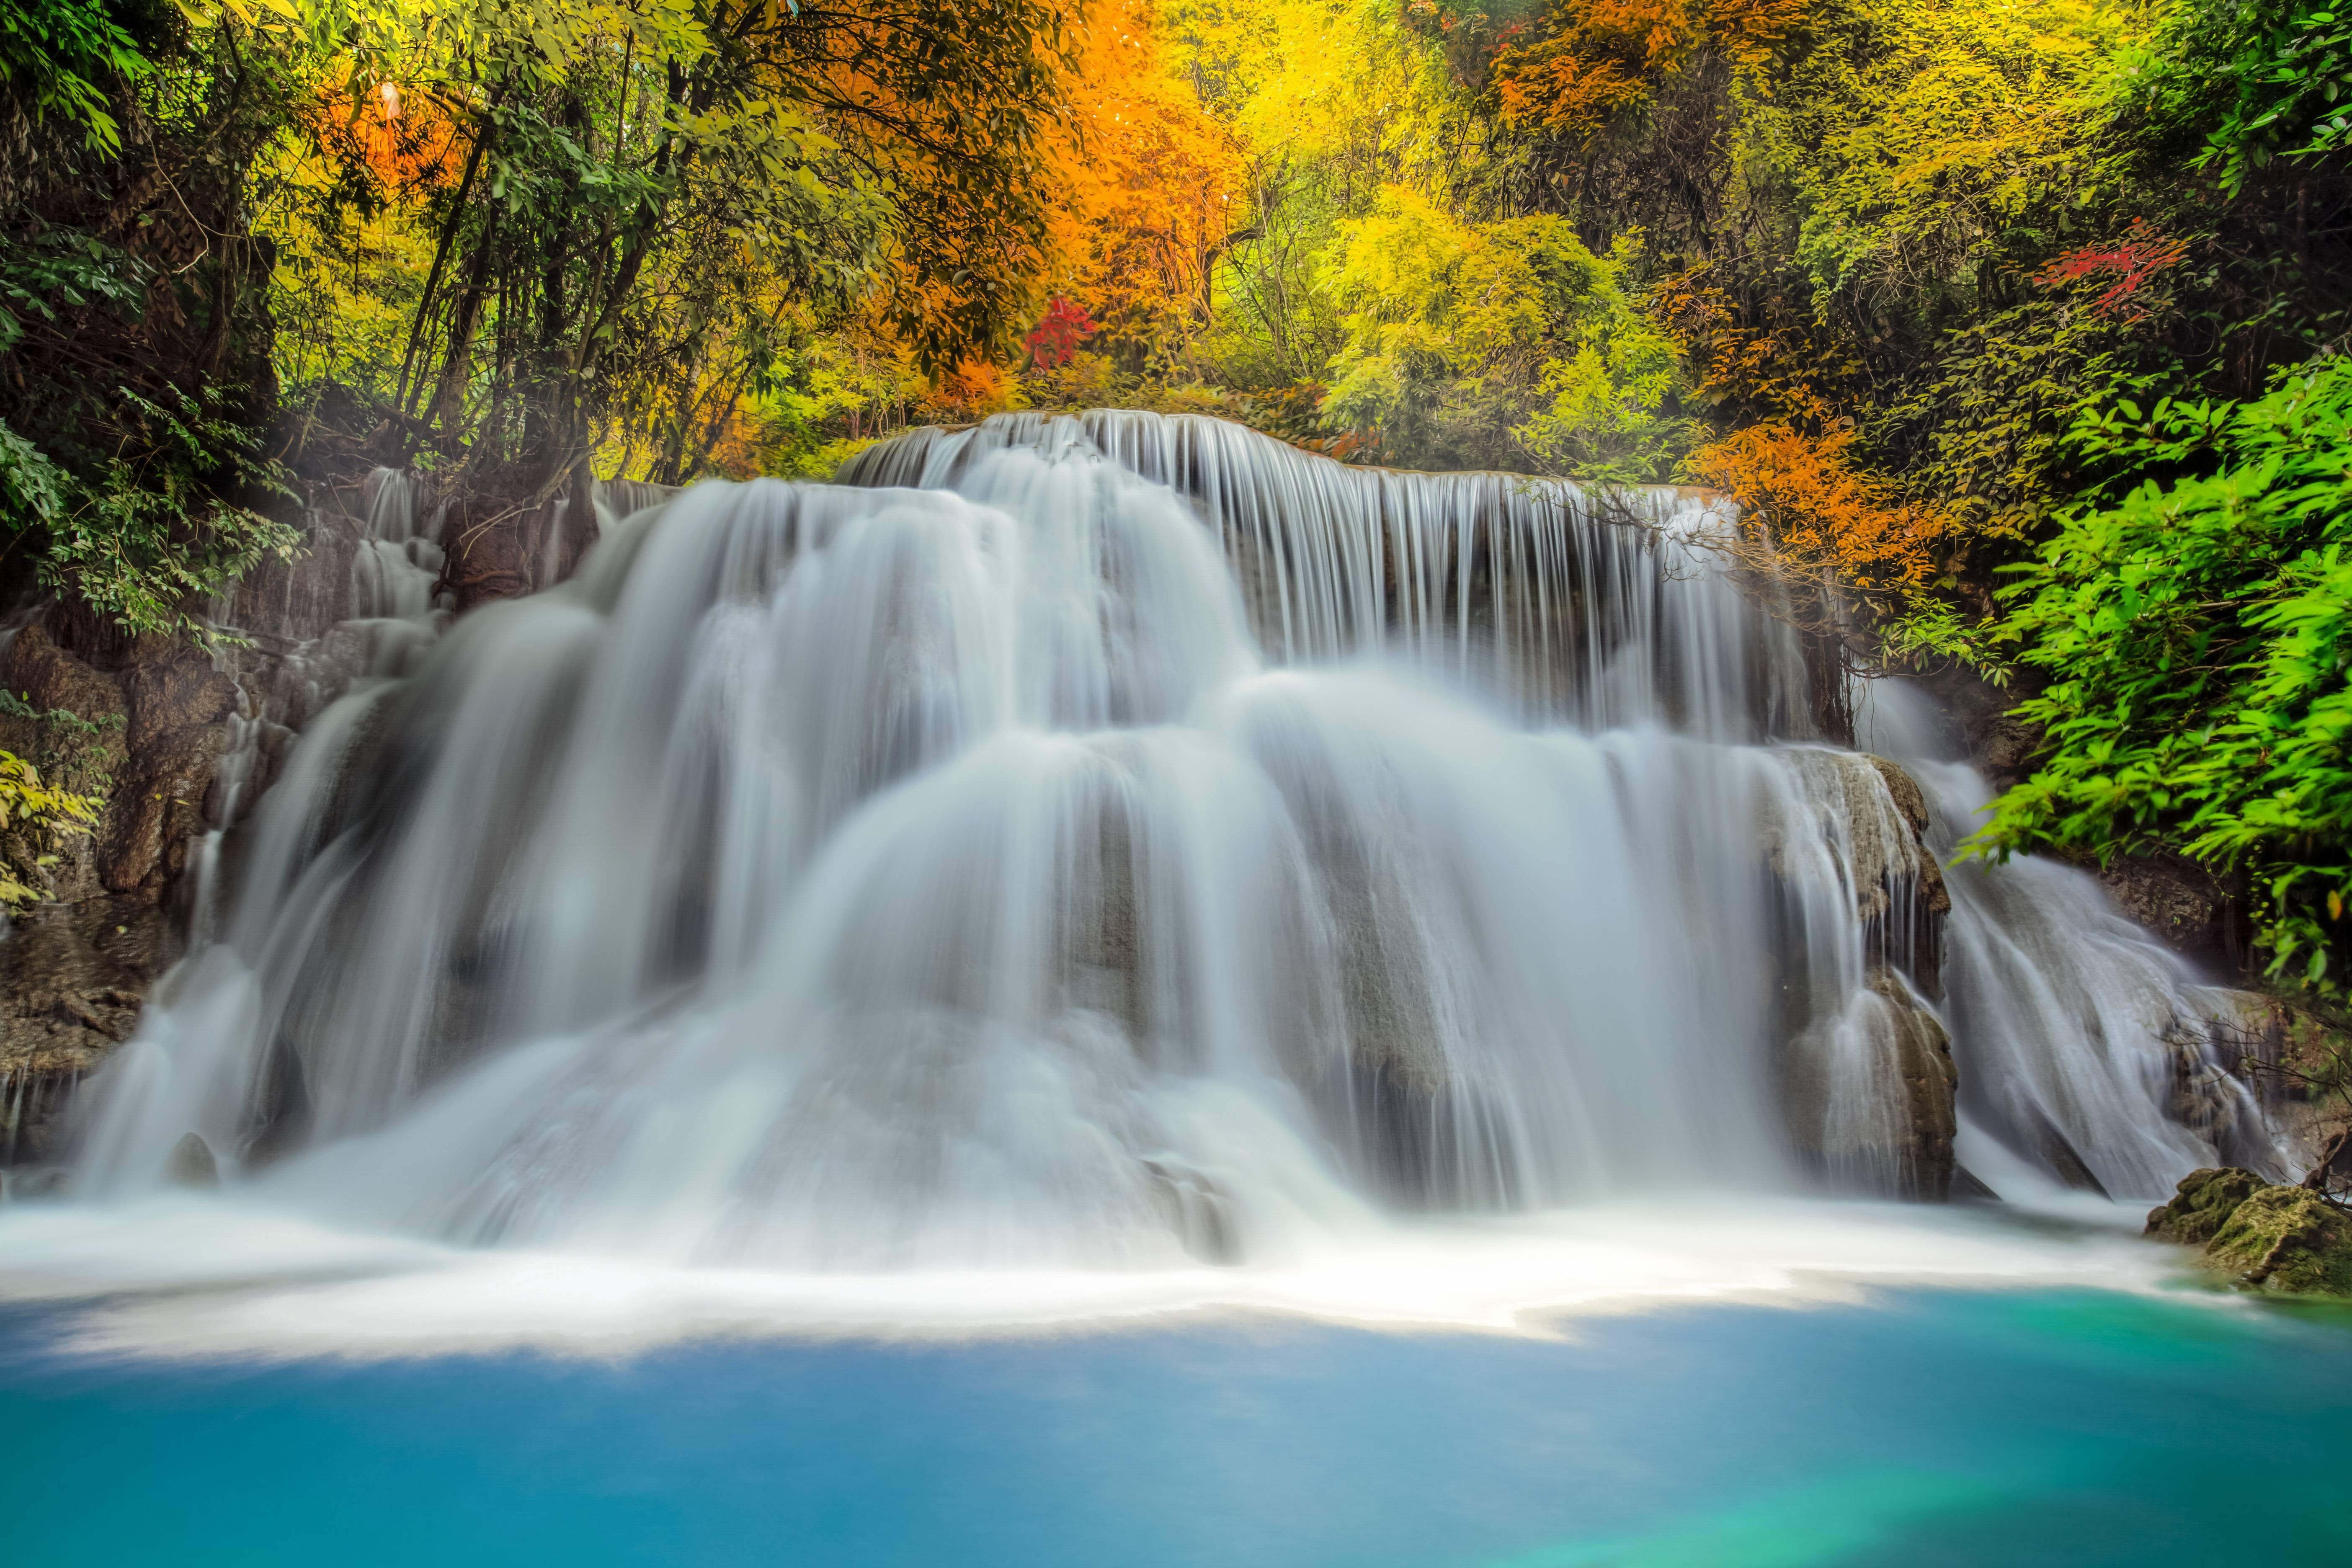 Hd Fall Wallpaper Iphone 5 Waterfall 電腦桌布 桌面背景 5616x3744 Id 562925